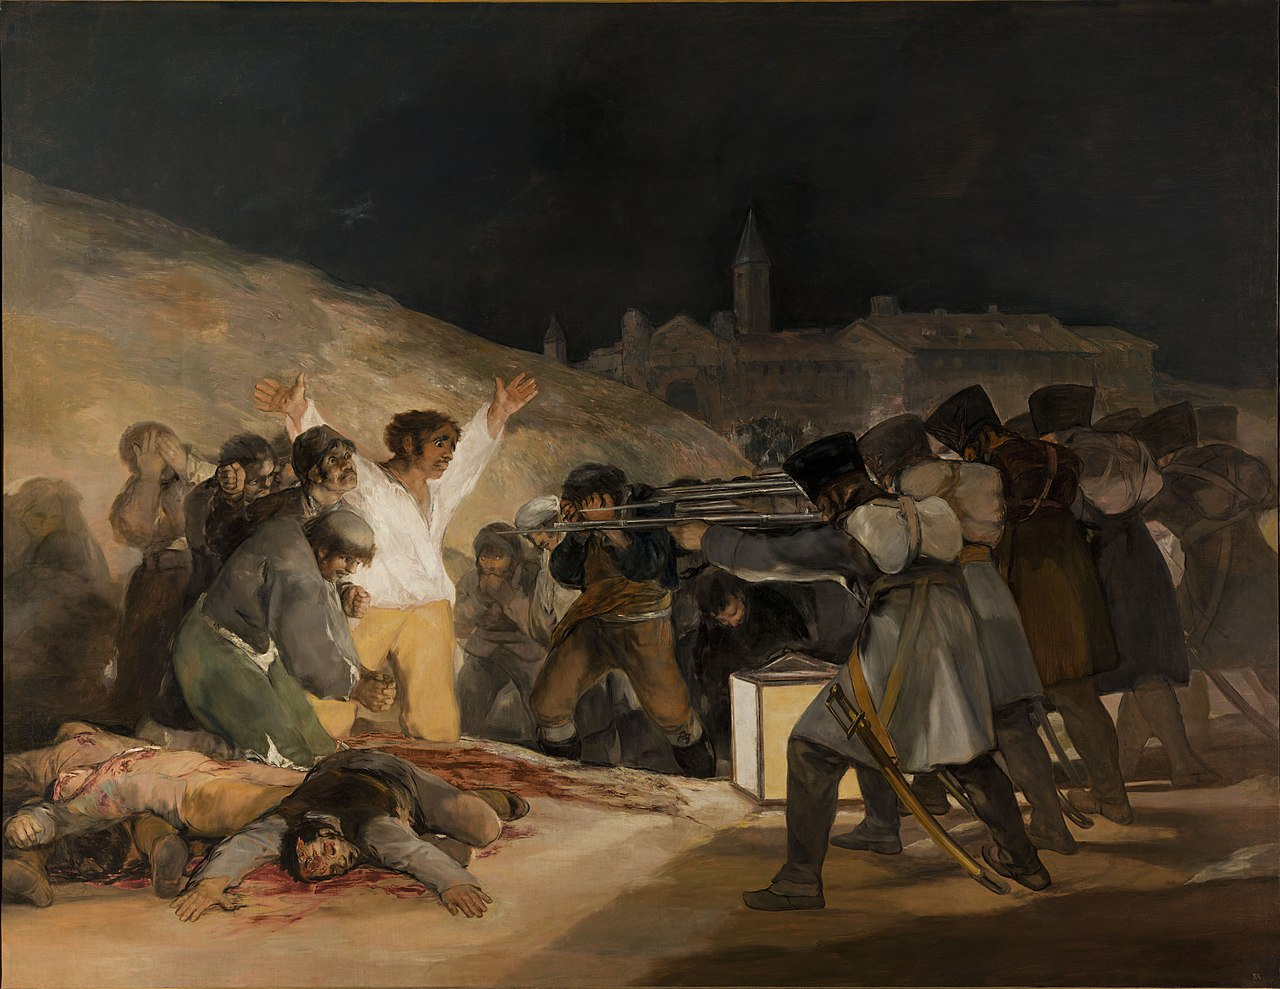 http://upload.wikimedia.org/wikipedia/commons/thumb/f/fd/El_Tres_de_Mayo,_by_Francisco_de_Goya,_from_Prado_thin_black_margin.jpg/1280px-El_Tres_de_Mayo,_by_Francisco_de_Goya,_from_Prado_thin_black_margin.jpg